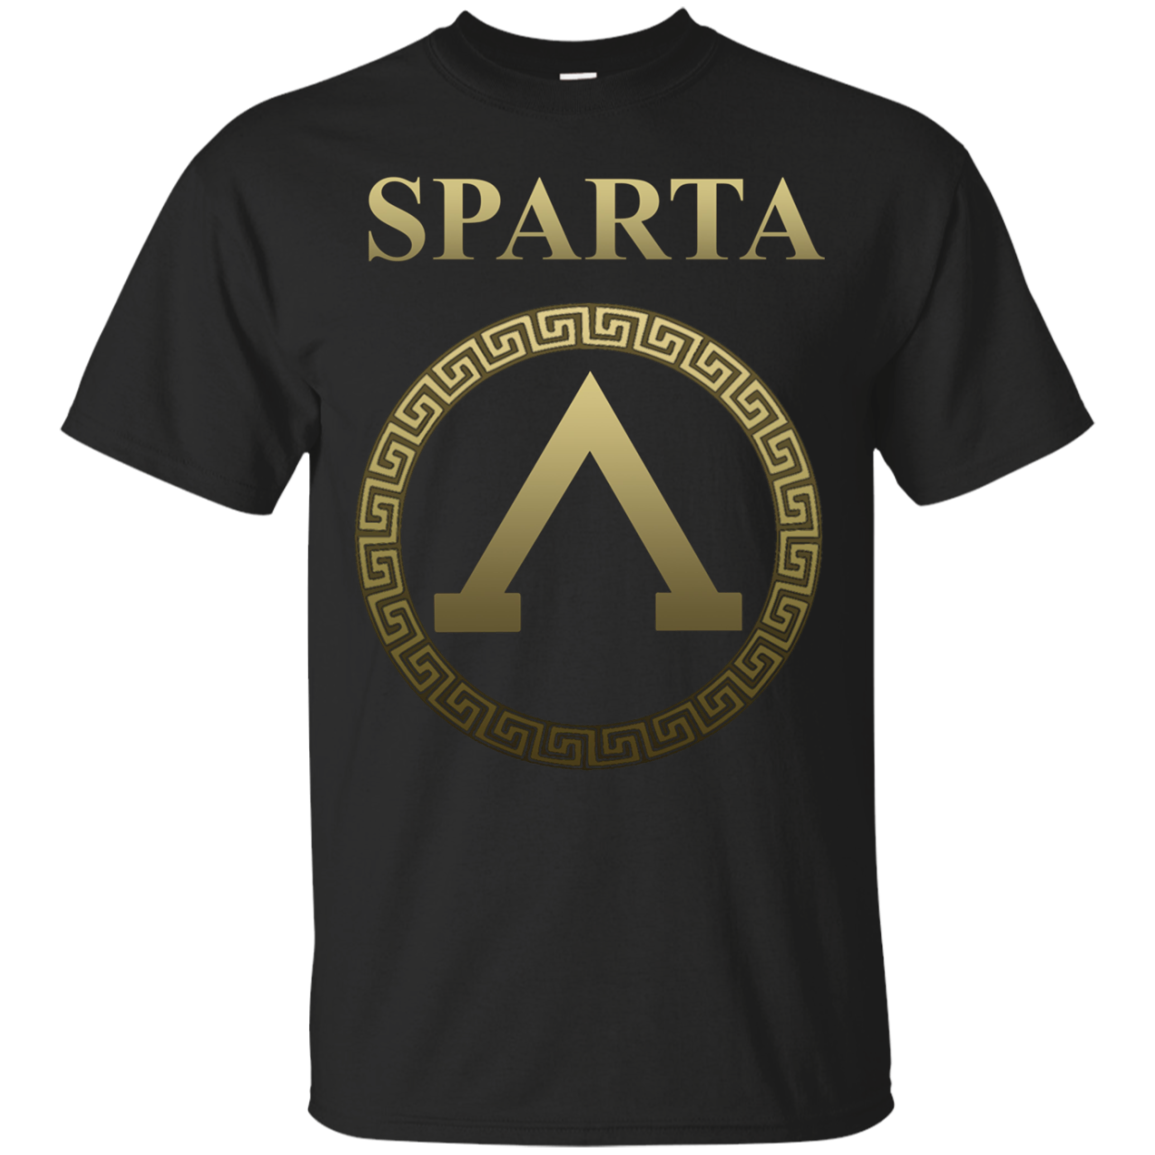 Sparta Elite Warrior Shield T-shirt